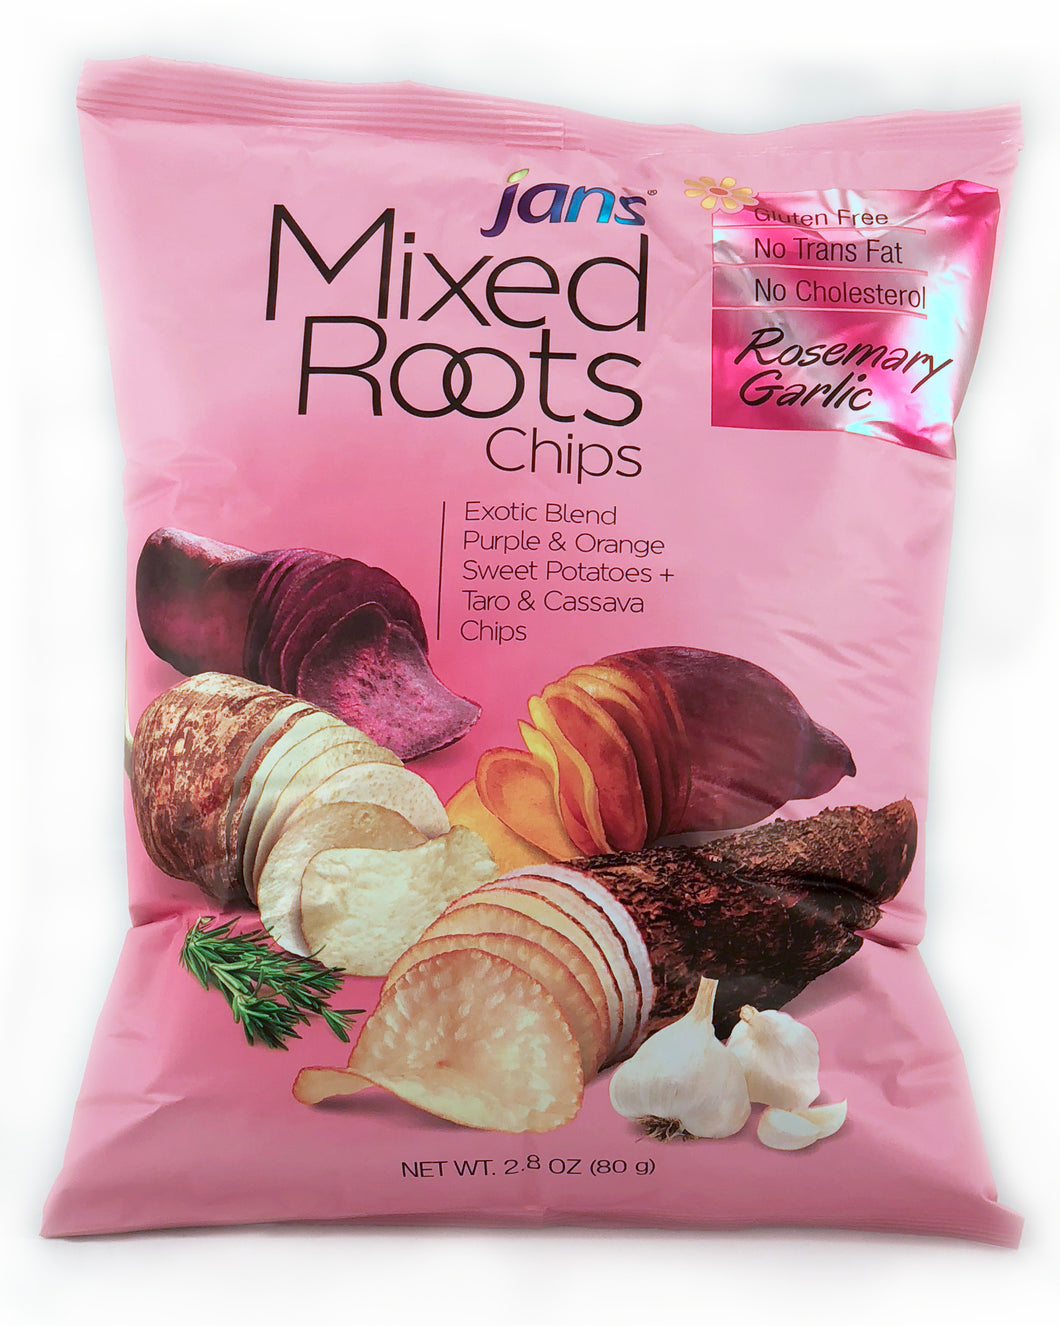 Mixed Roots Chips Rosemary Garlic - Wholesale Unlimited Inc.